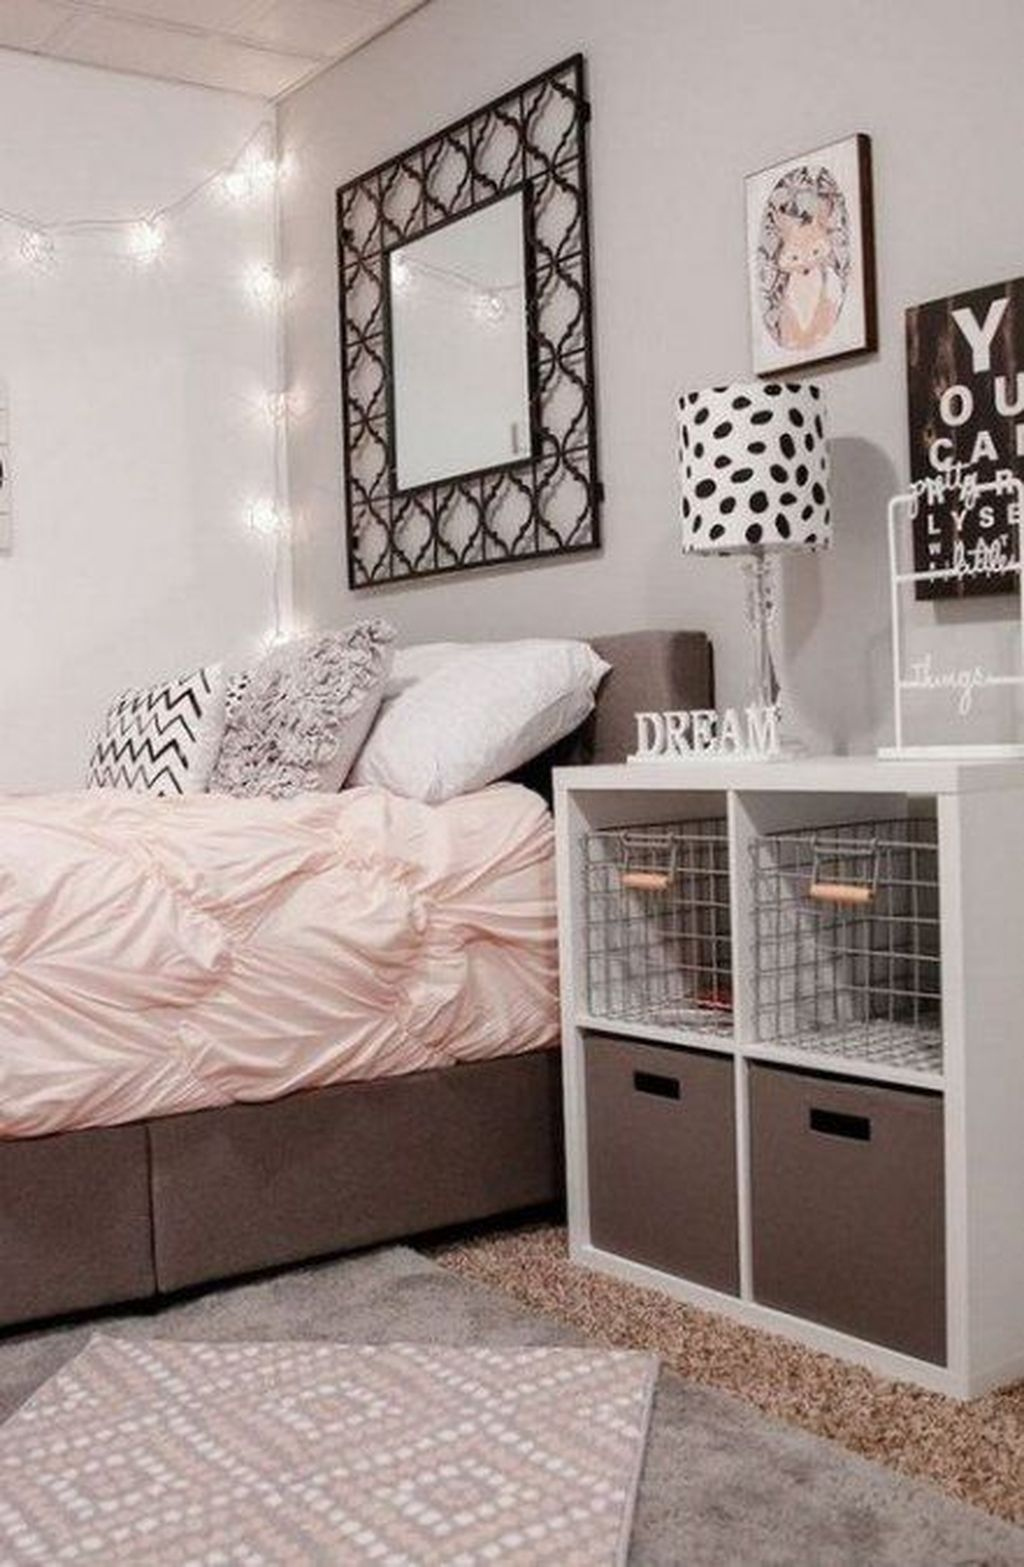 Best Teenager Bedroom Ideas With Awesome Decor 10